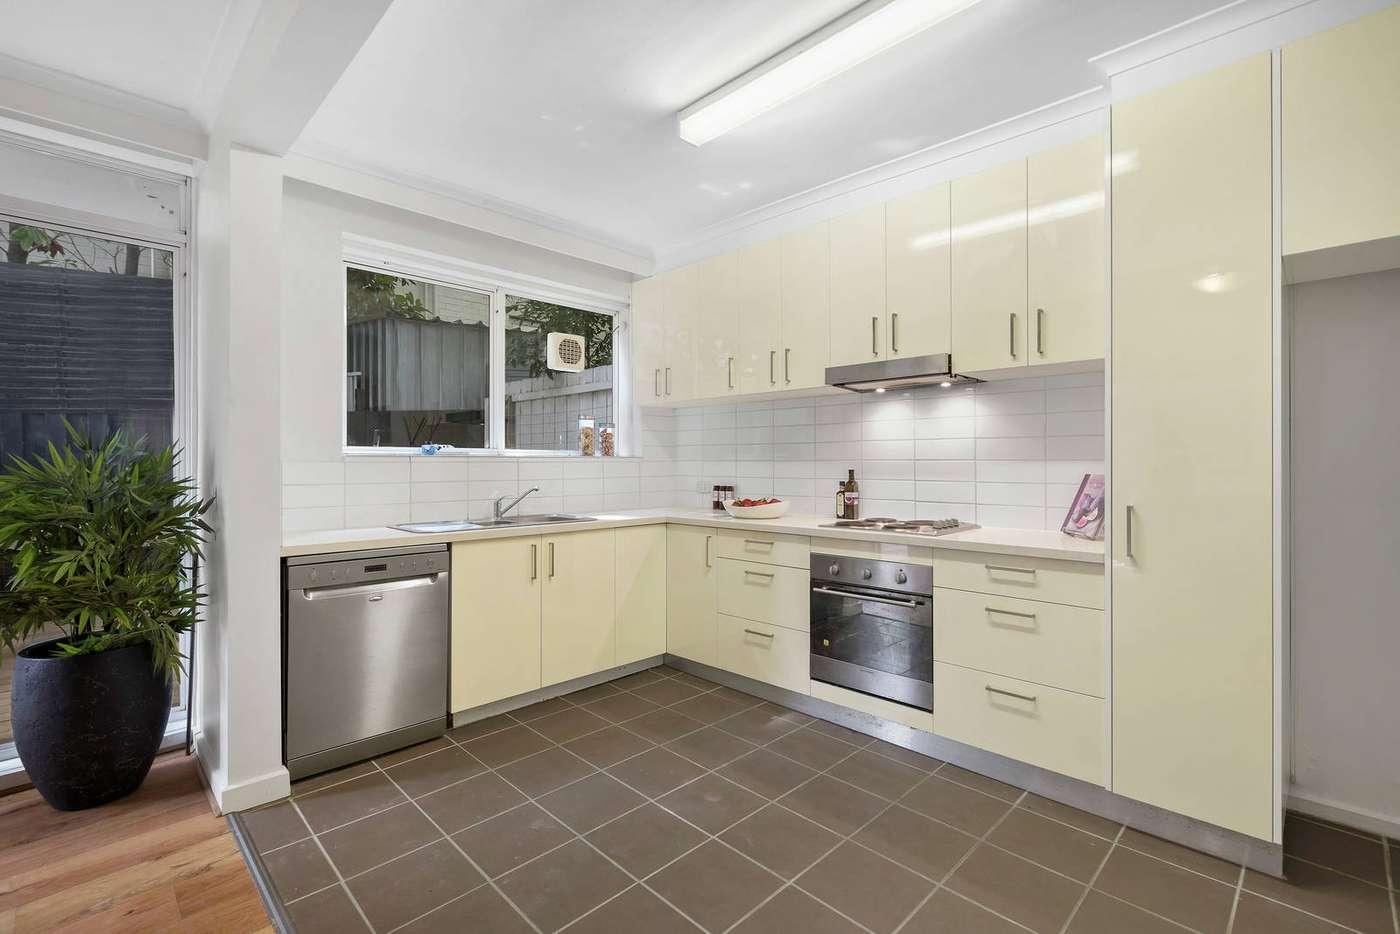 Fifth view of Homely apartment listing, 1/12 Osborne Avenue, Glen Iris VIC 3146